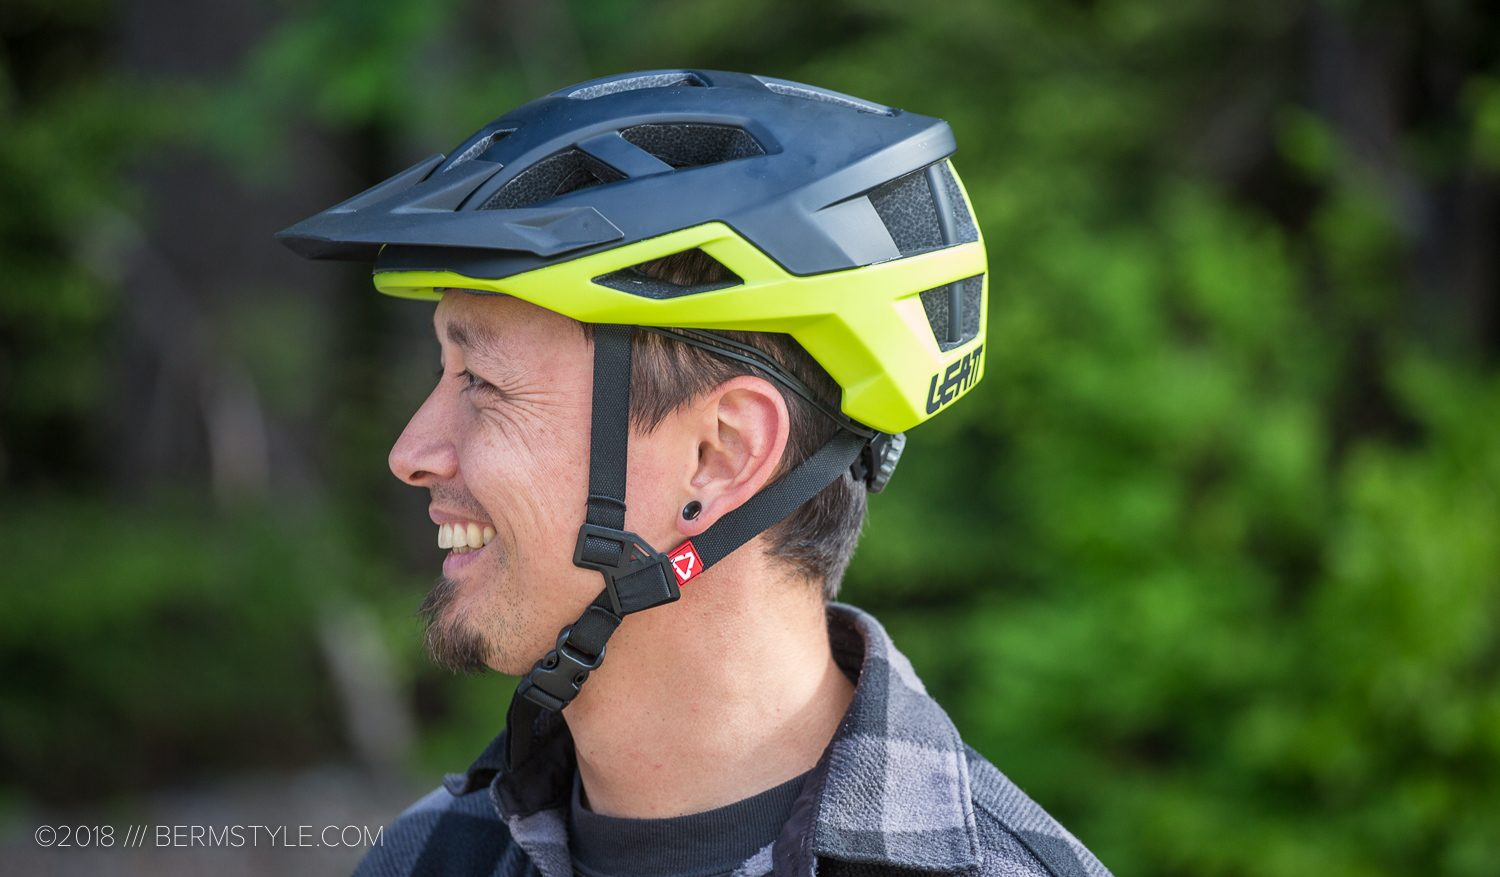 Review: Leatt DBX 2.0 Helmet